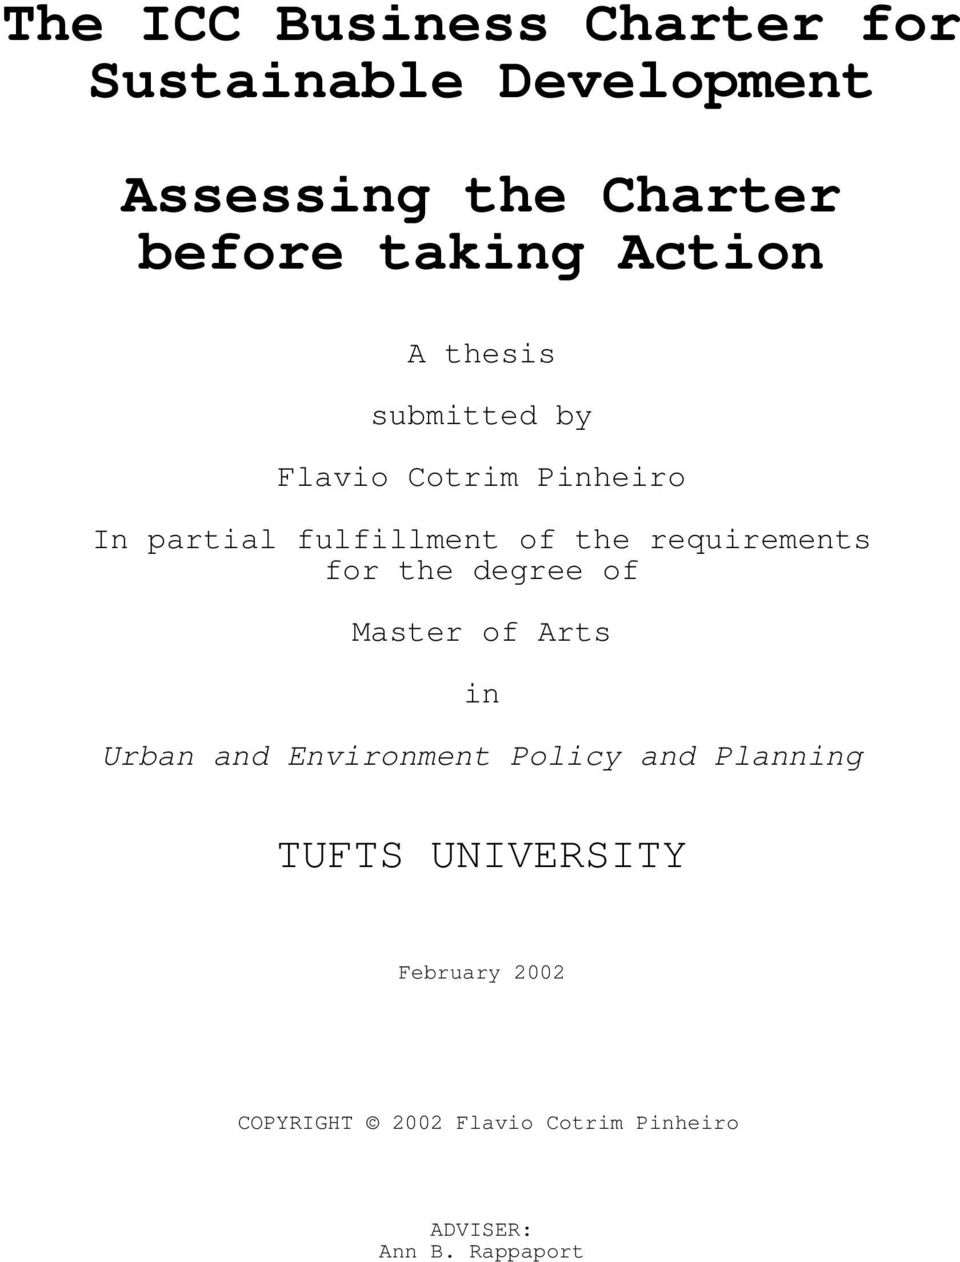 requirements for the degree of Master of Arts in Urban and Environment Policy and